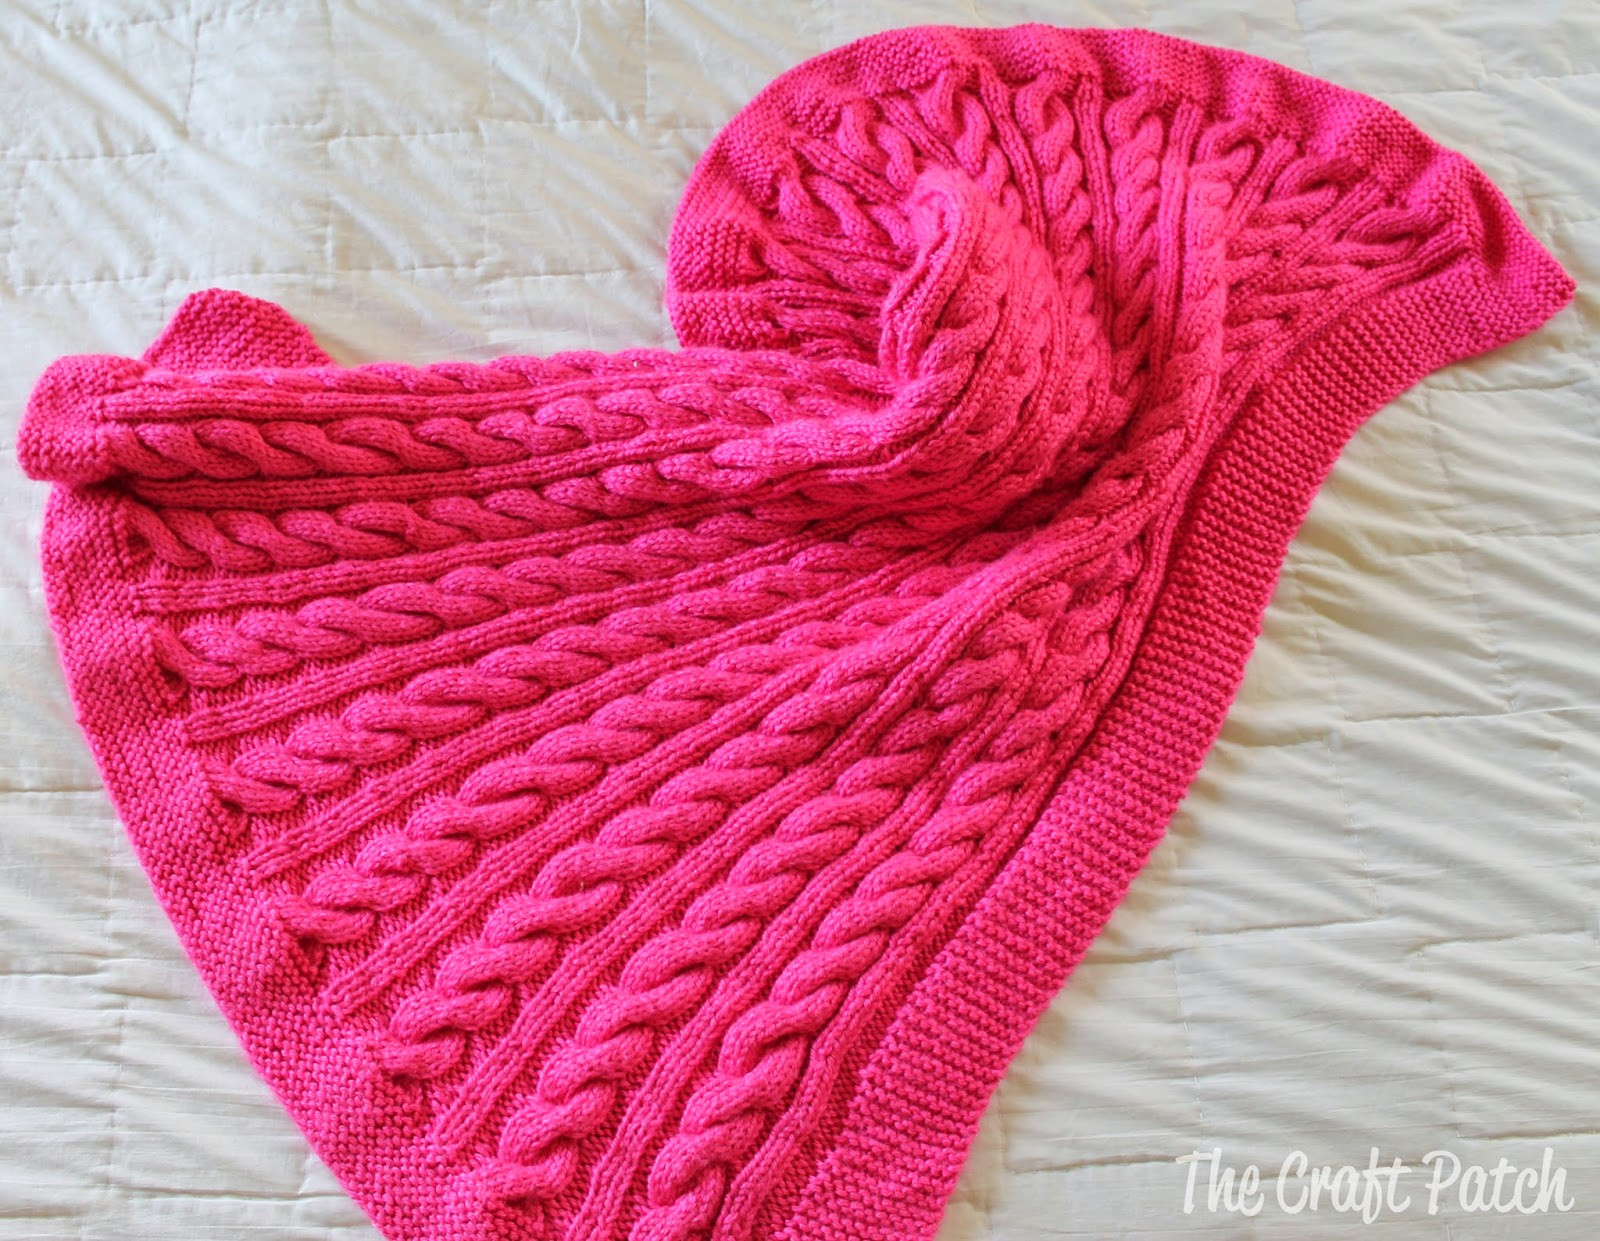 Elegant the Craft Patch Cable Knit Baby Blanket Baby Blanket Size Knit Of Awesome 42 Pictures Baby Blanket Size Knit